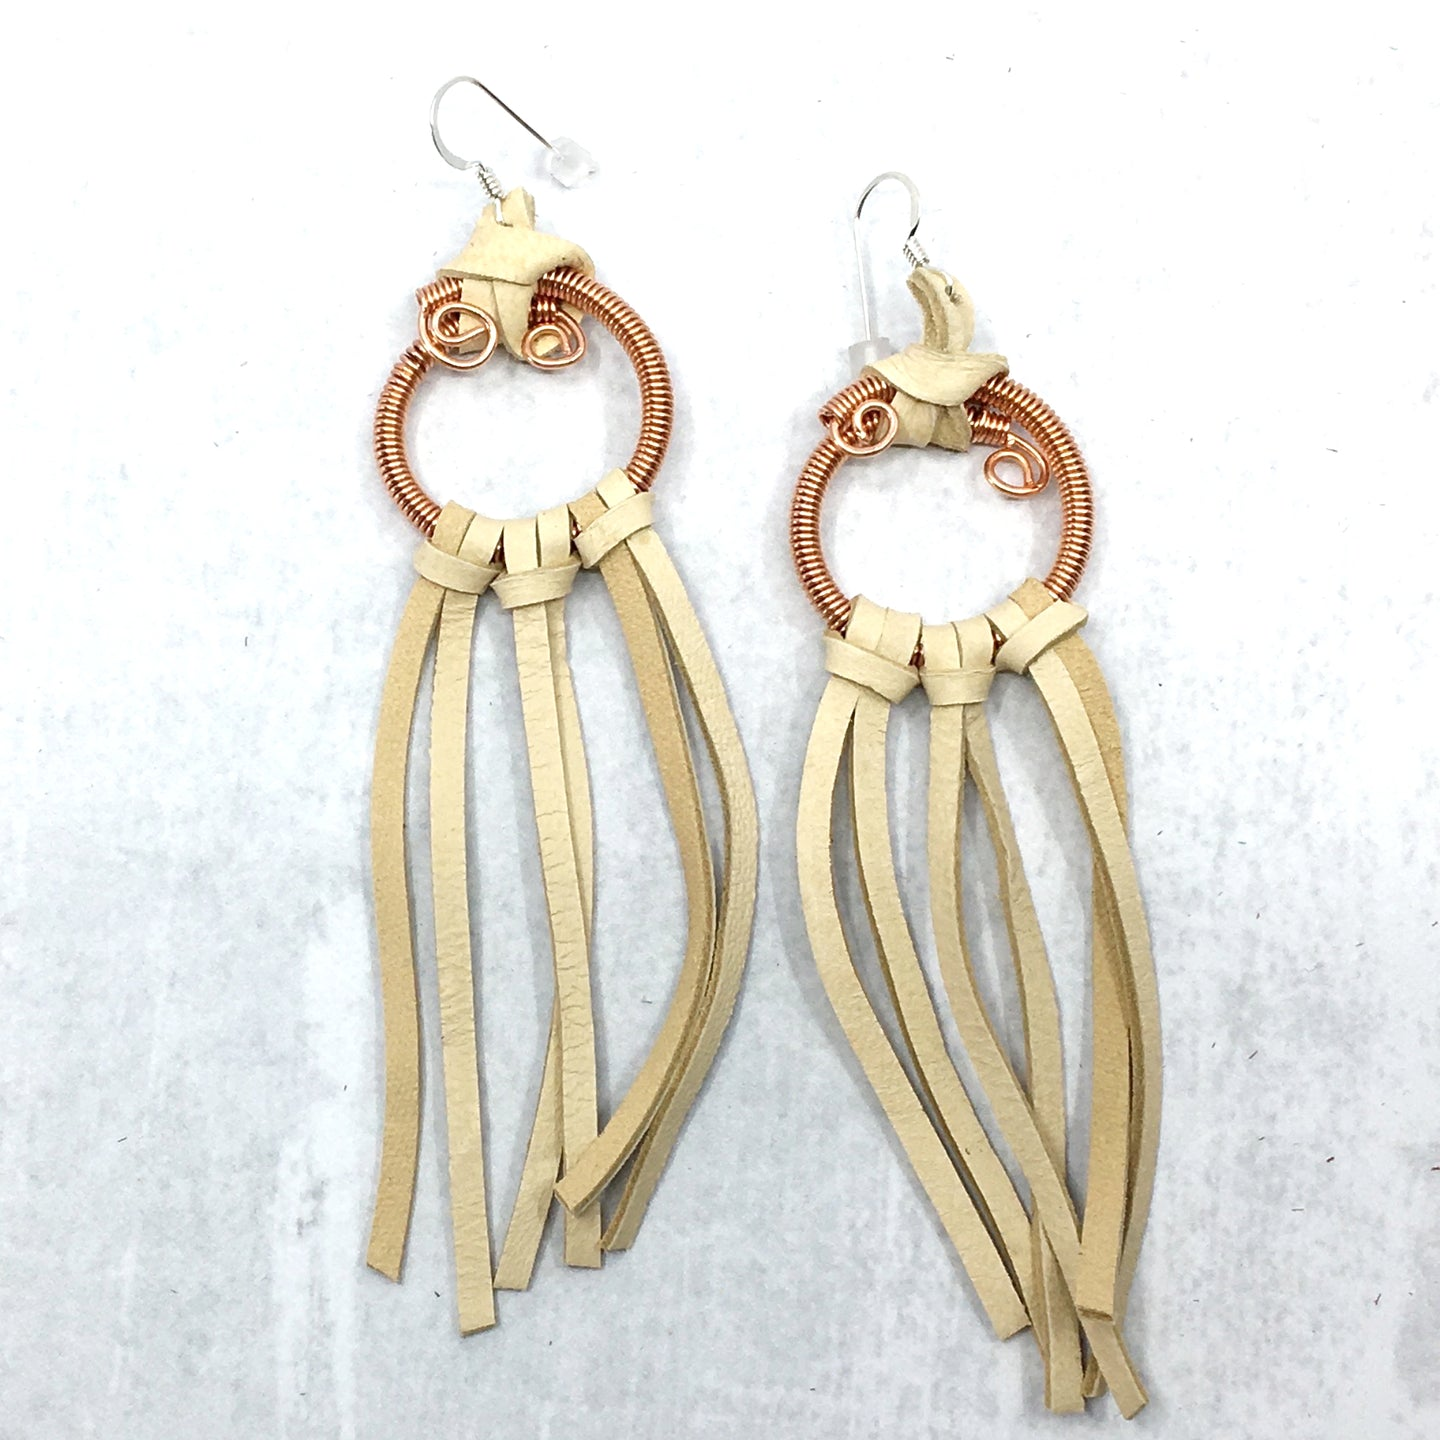 Effortless Dream buckskin deer leather fringe earrings by Buckaroo Bling